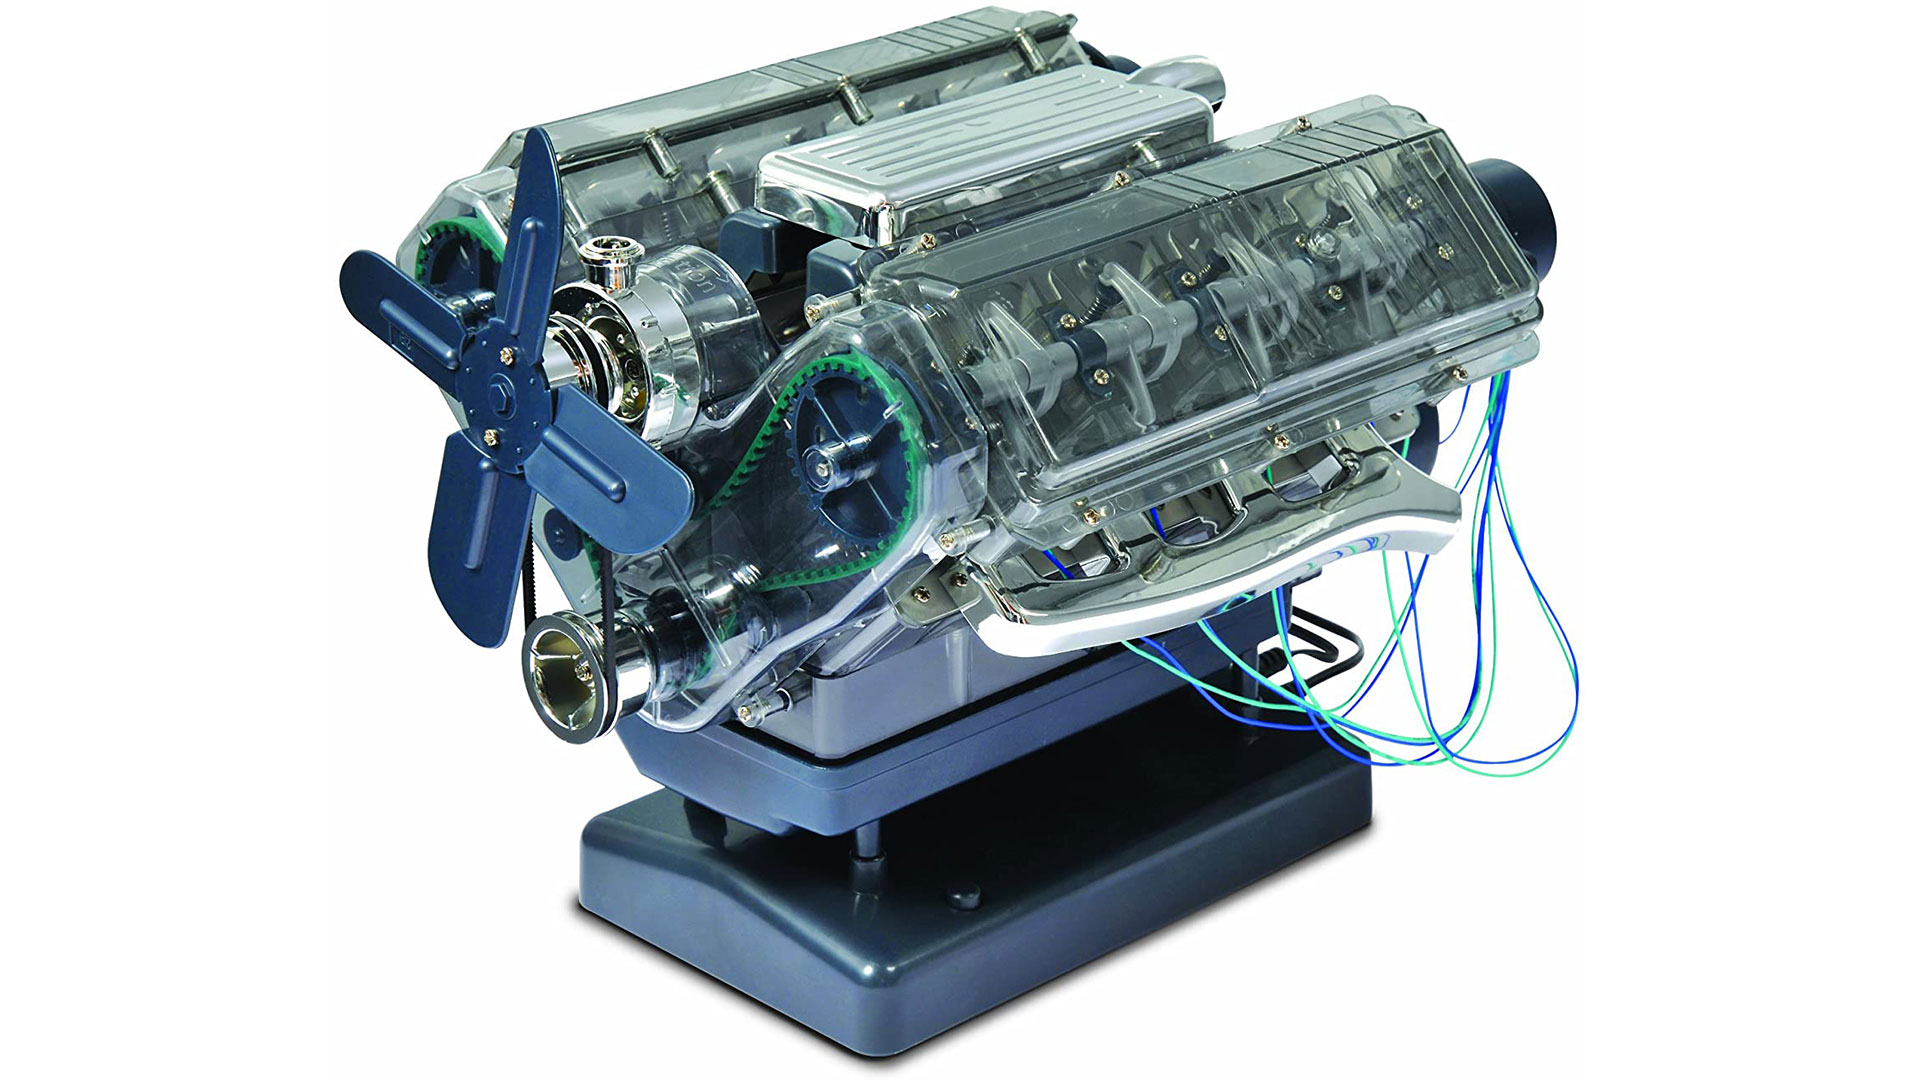 haynes model v8 engine